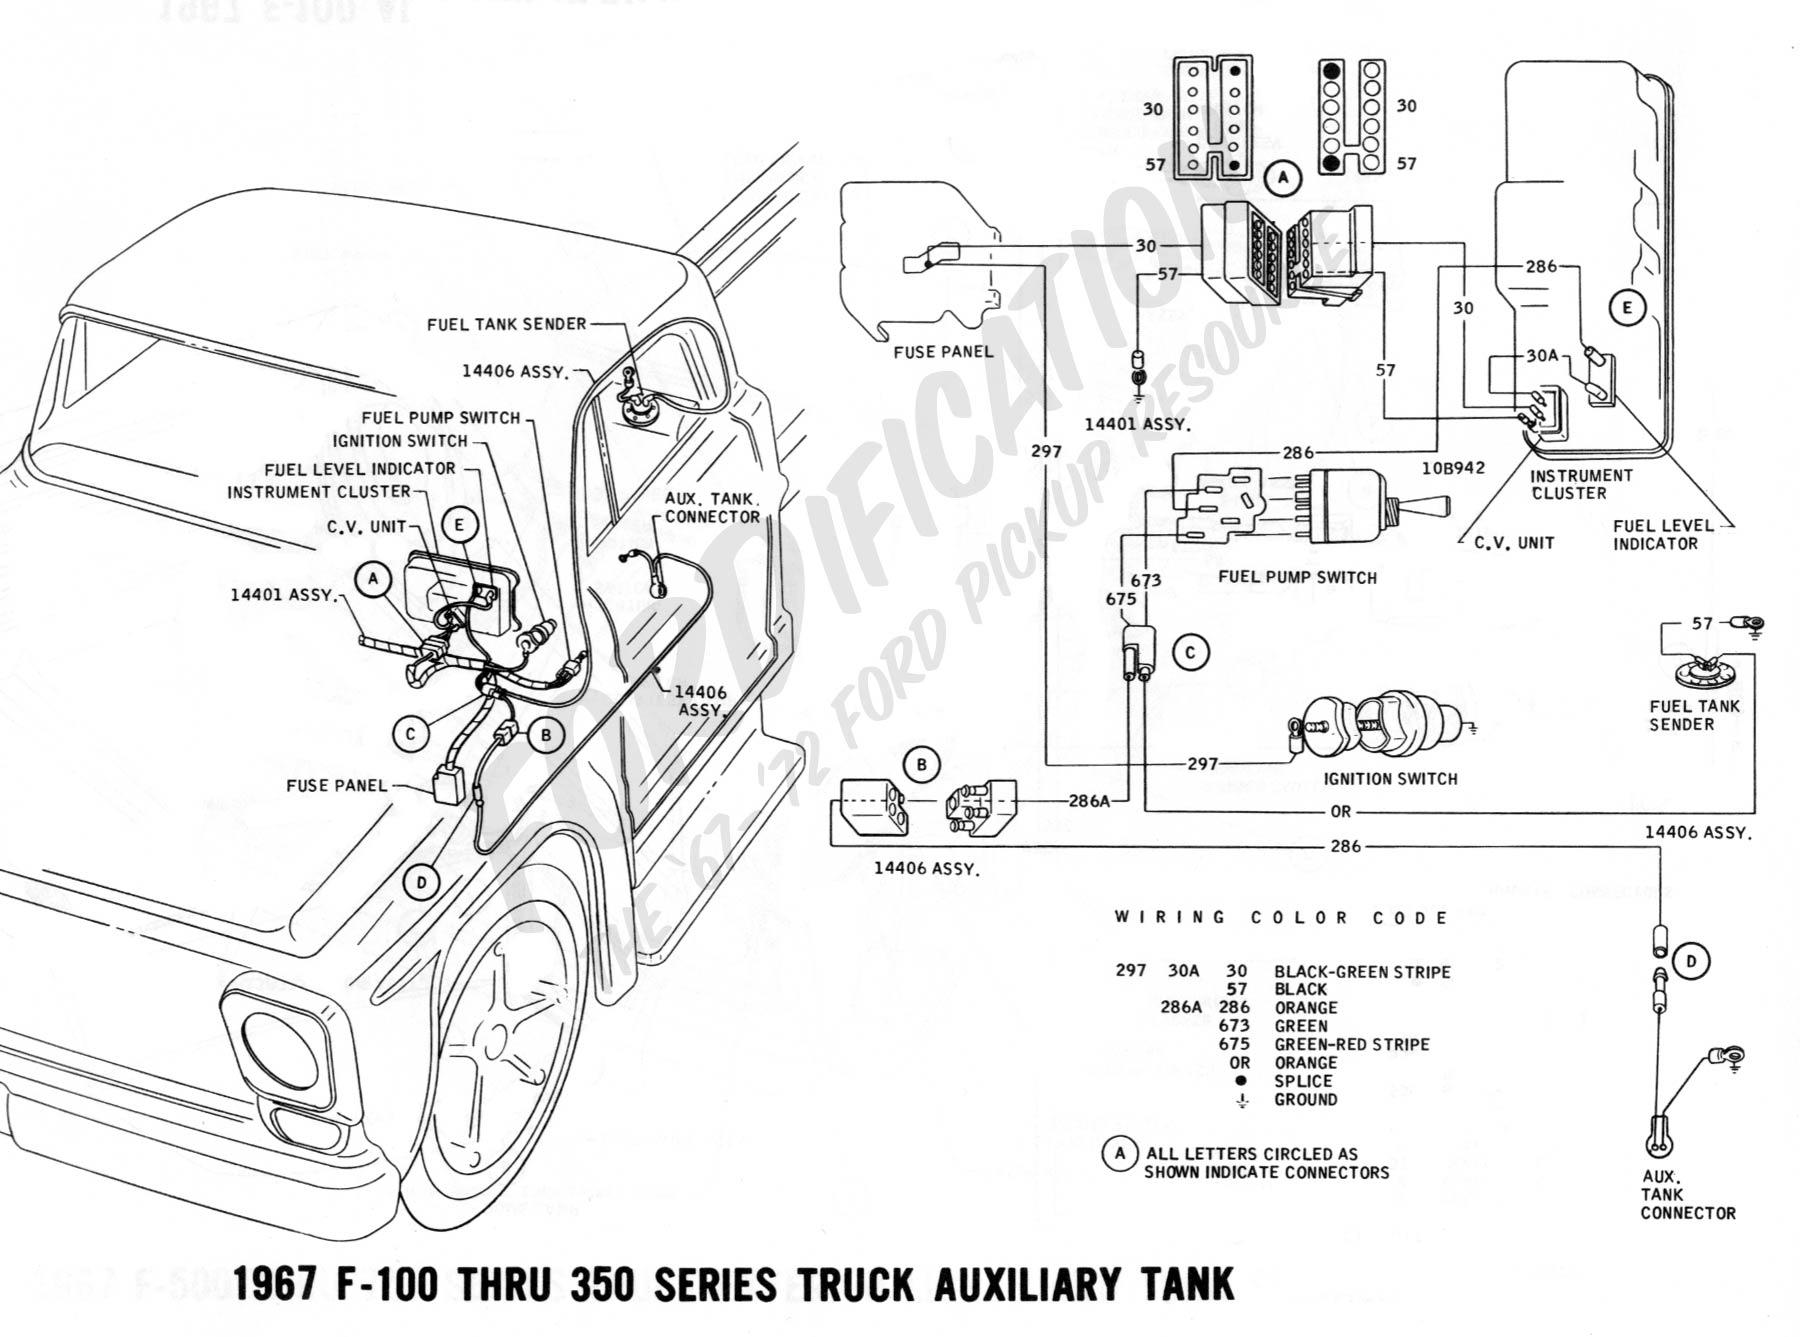 91 Ford F 350 Wiring Diagram Coil Will Be A Thing 1996 Truck Technical Drawings And Schematics Section H 1985 1994